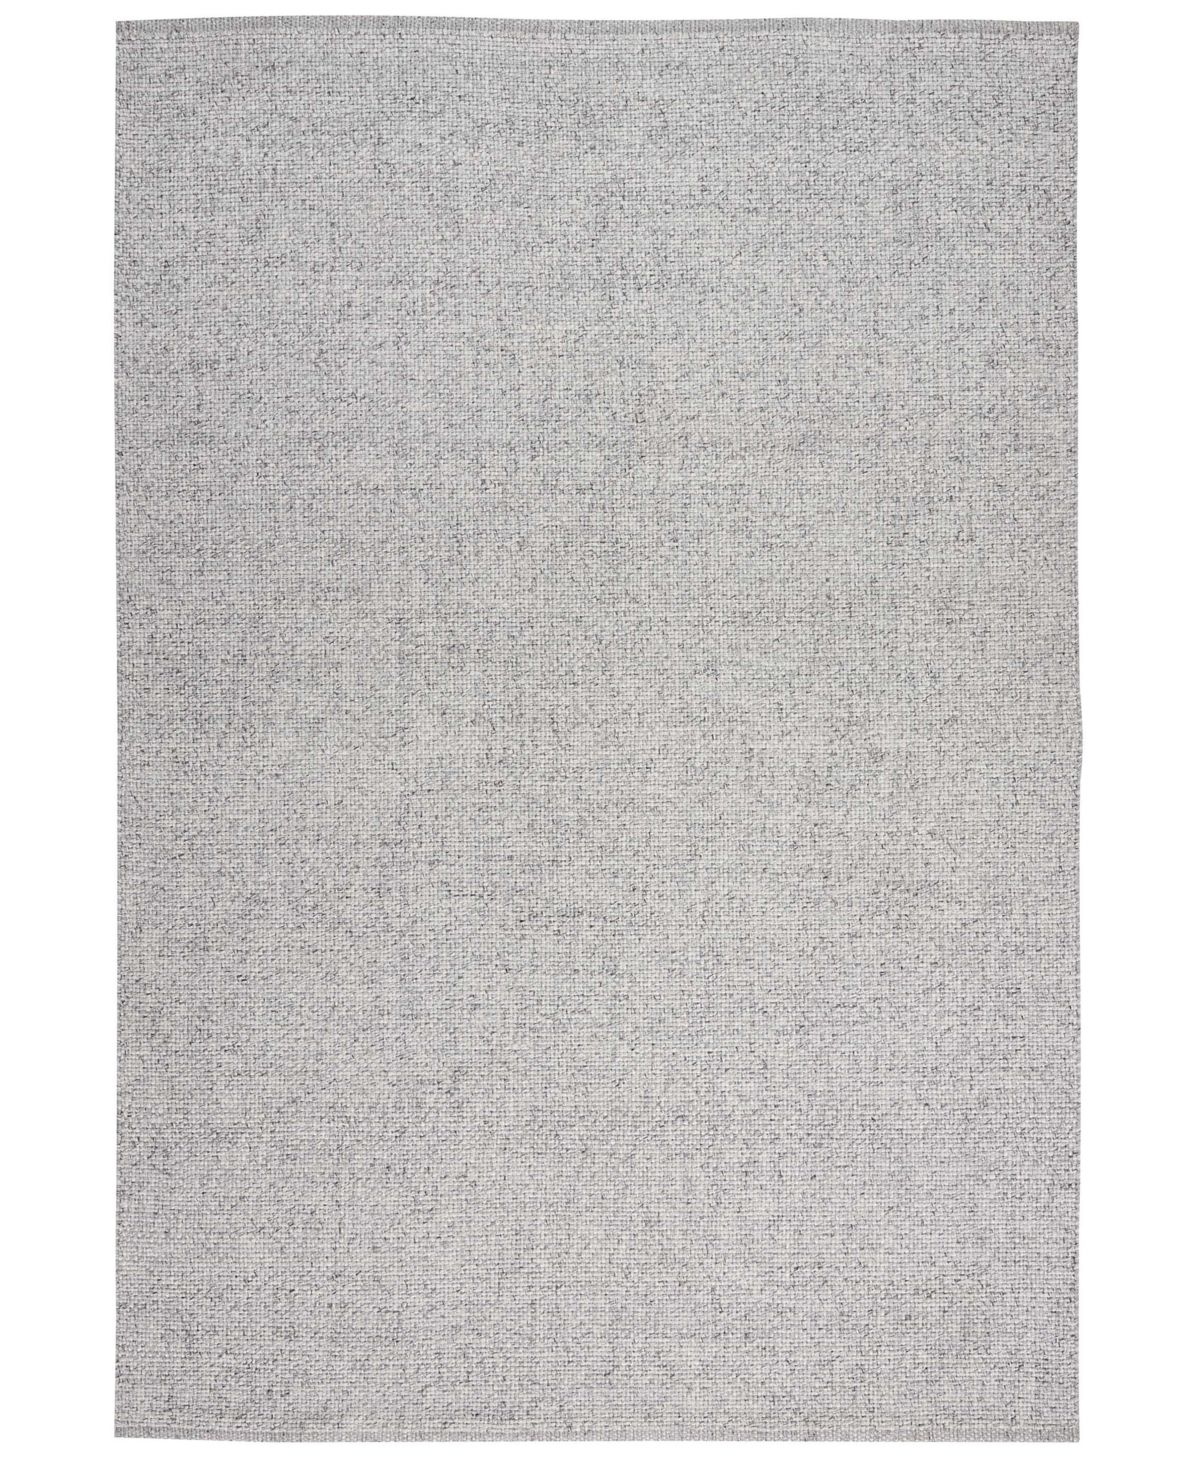 Calvin Klein Ck39 Tobiano 7 9 X 9 9 Area Rug Reviews Rugs